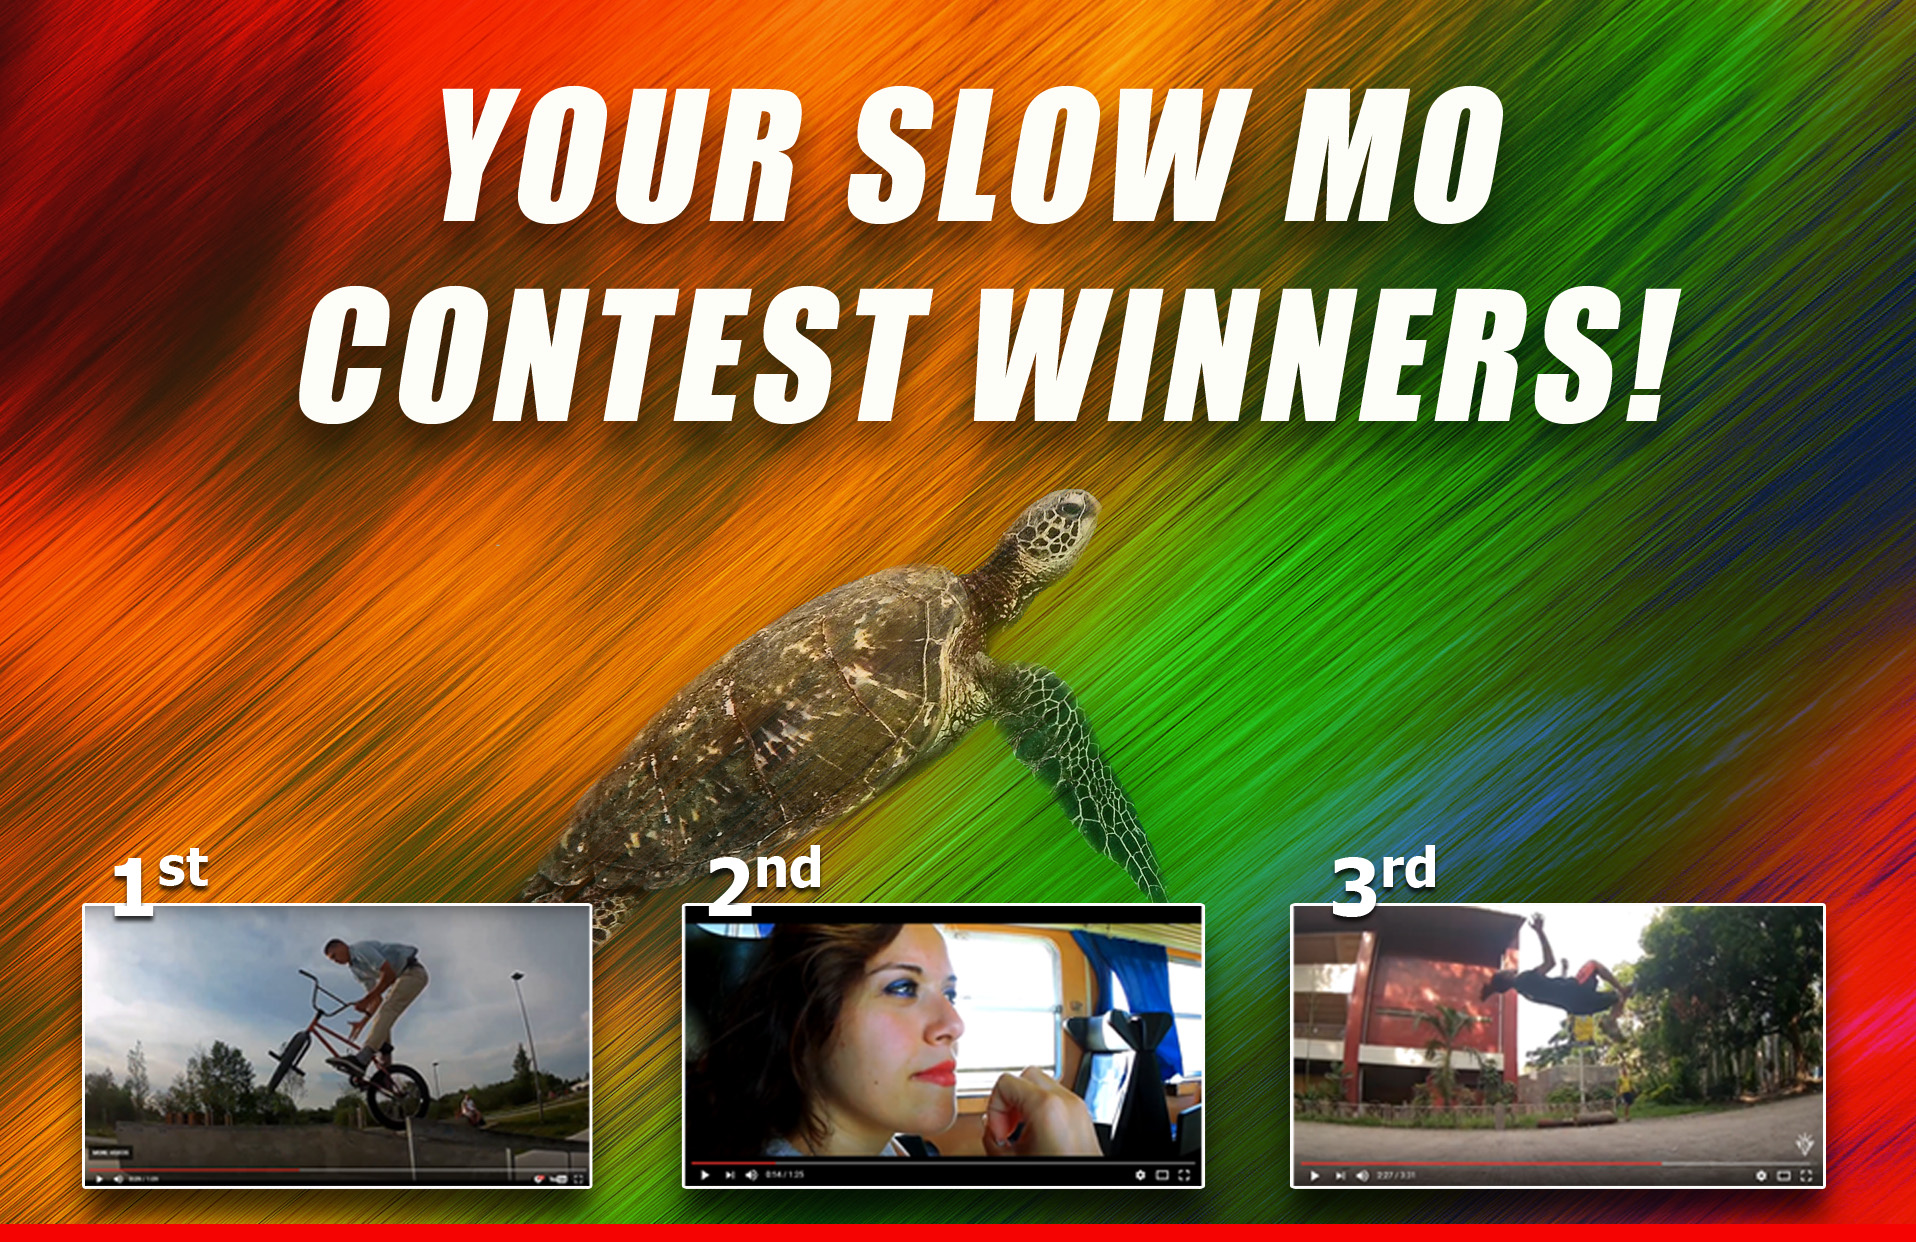 SJCAM SlowMo Contest Winners!